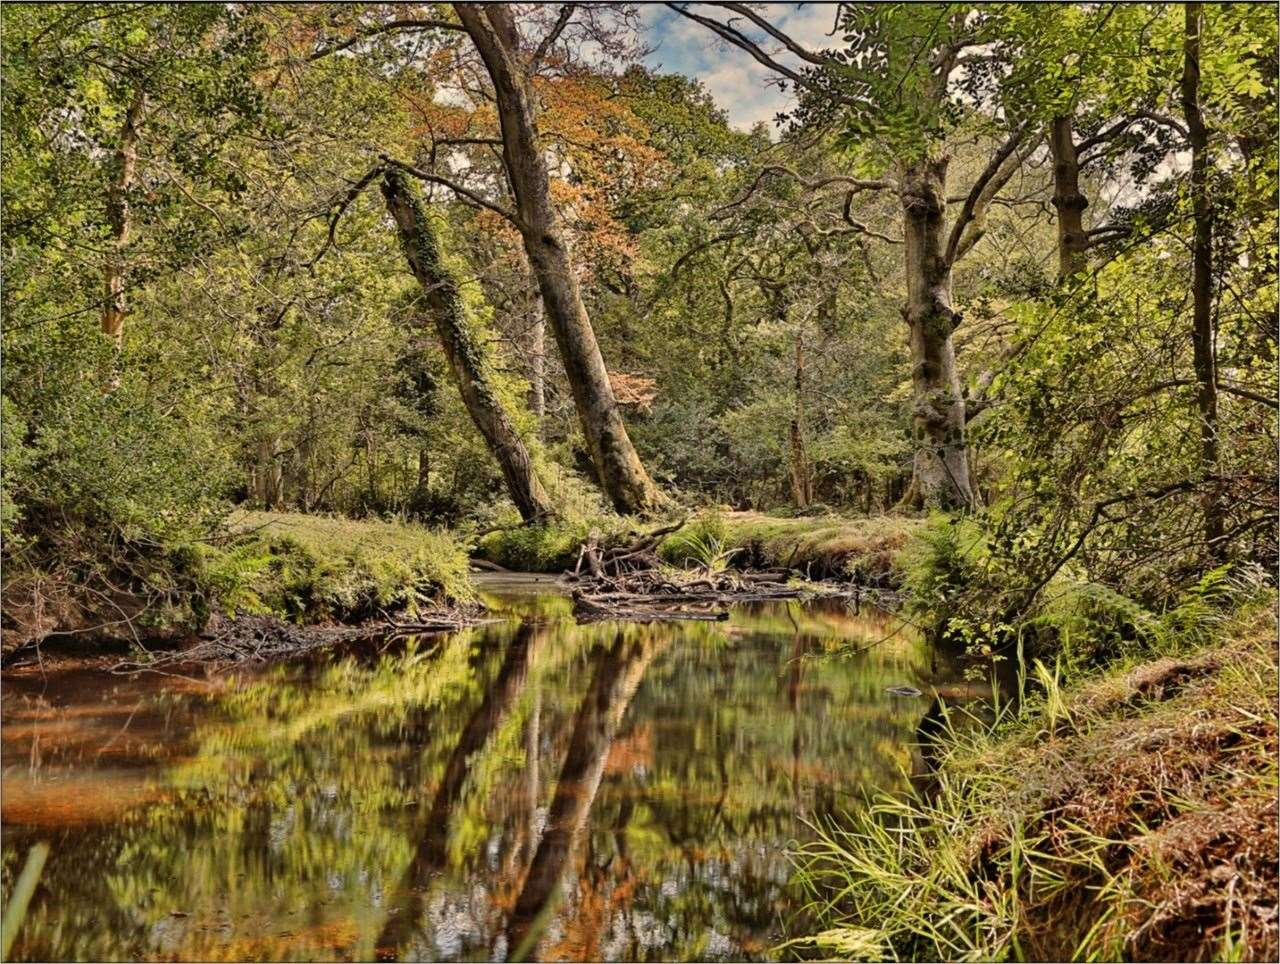 23rd April 2021: Tim Bayliss captured these reflections in a river near Brockenhurst